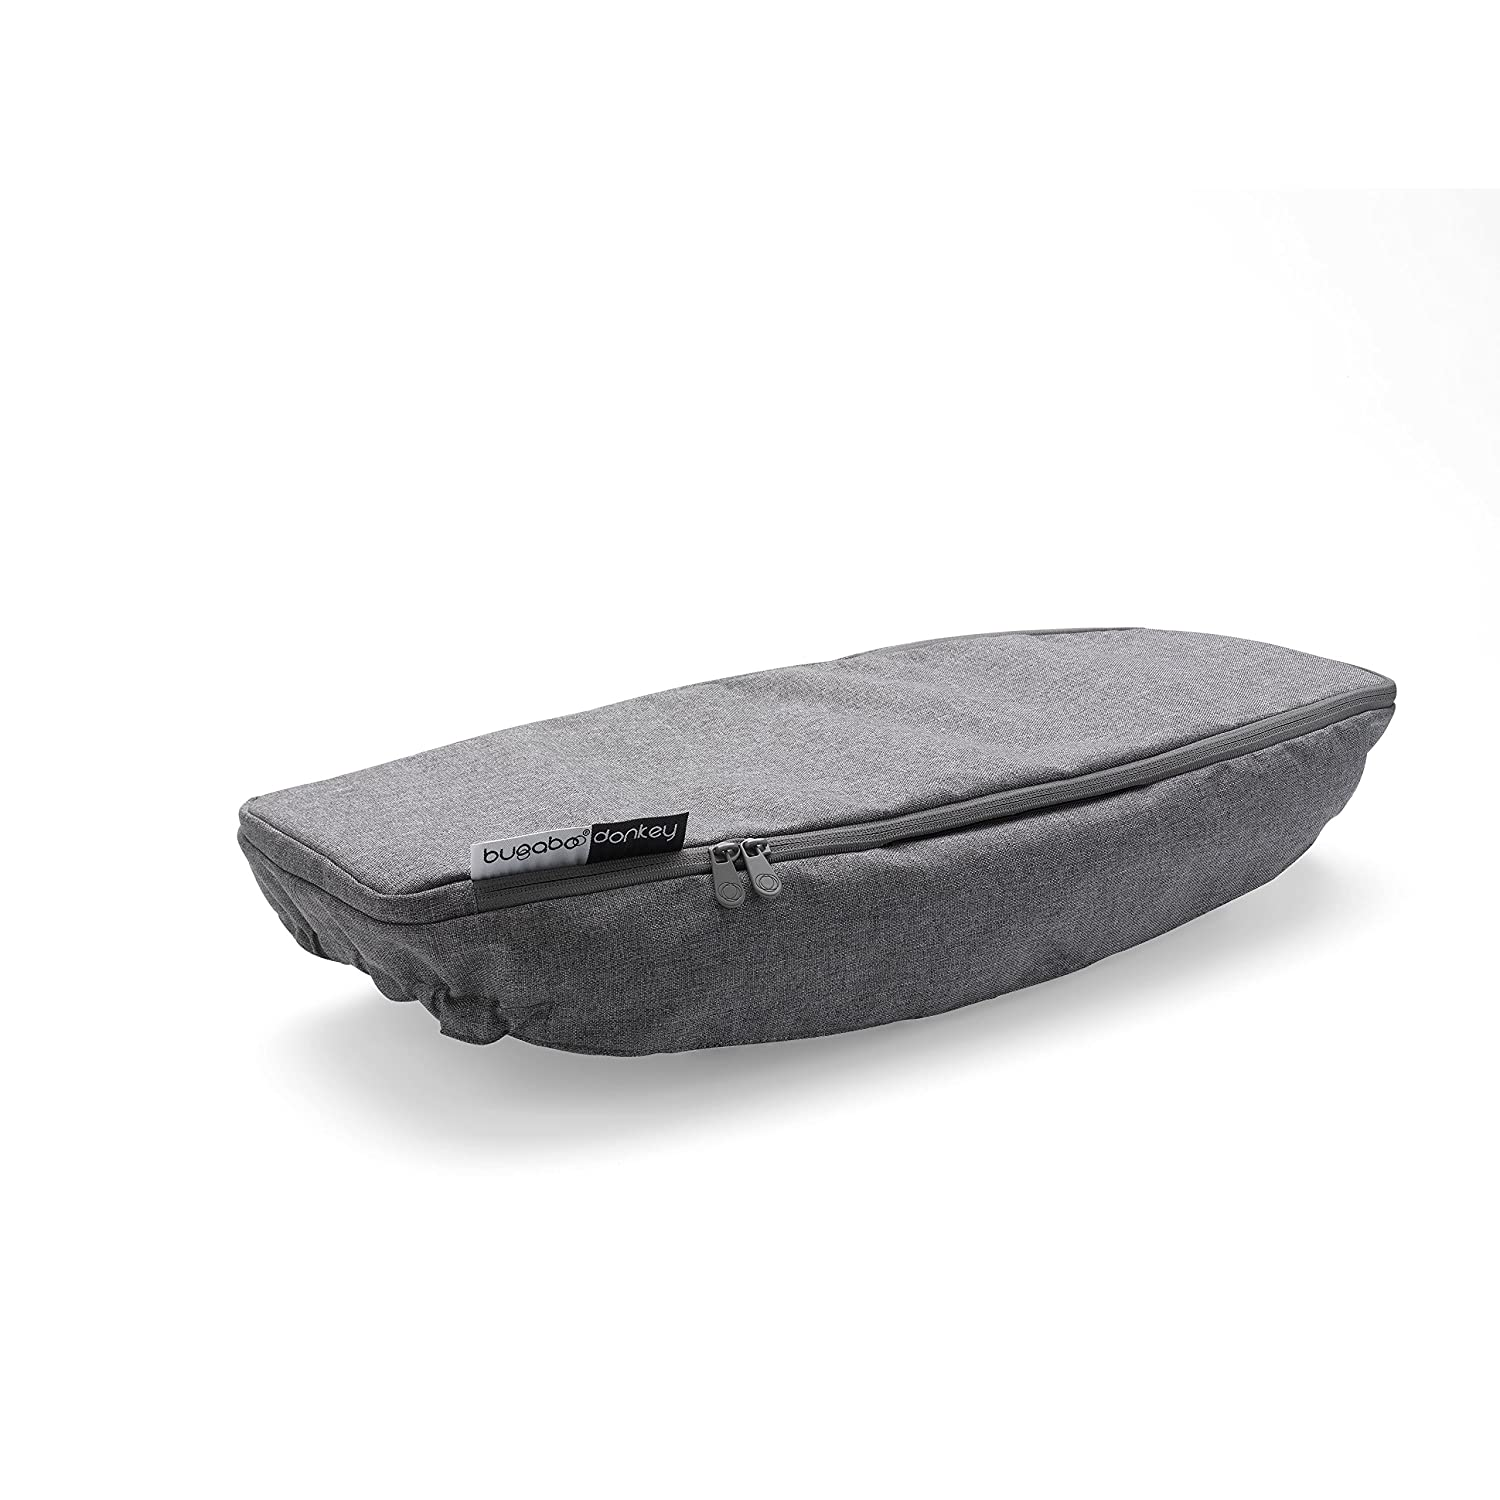 Bugaboo Donkey² Side Luggage Basket Cover Grey Melange 180119GM01